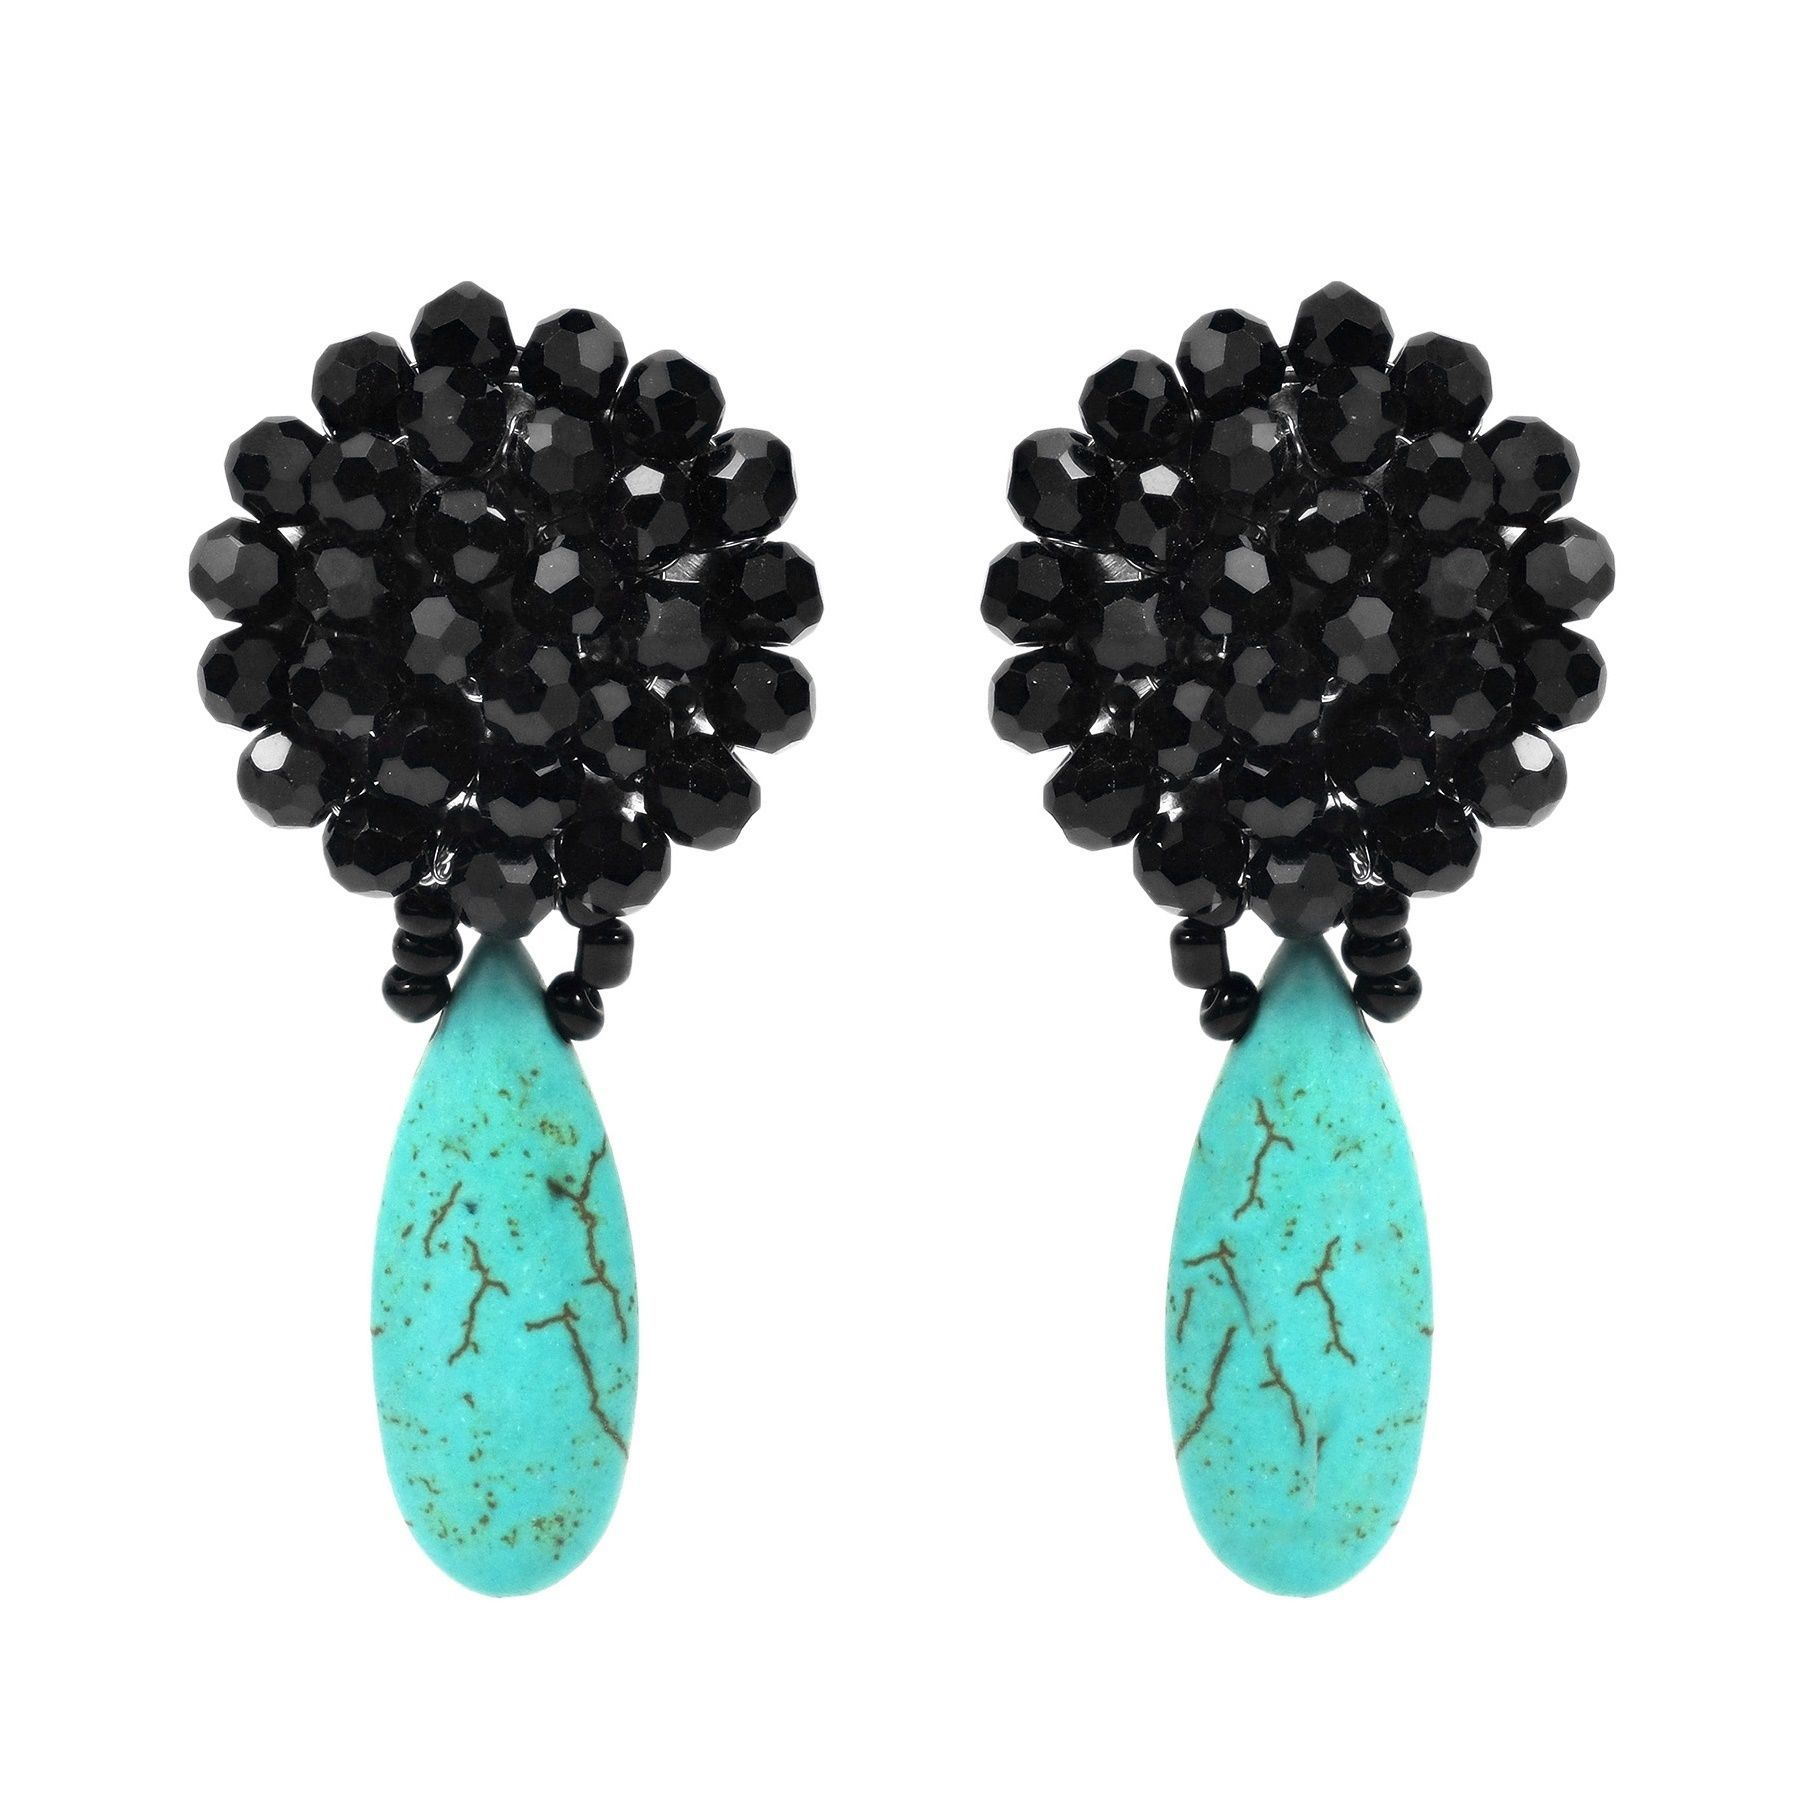 Artisan Naree handcrafted this unique and charming earrings. The earrings feature black crystal formed into a Chrysanthemum and teardrop shaped turquoise stone.